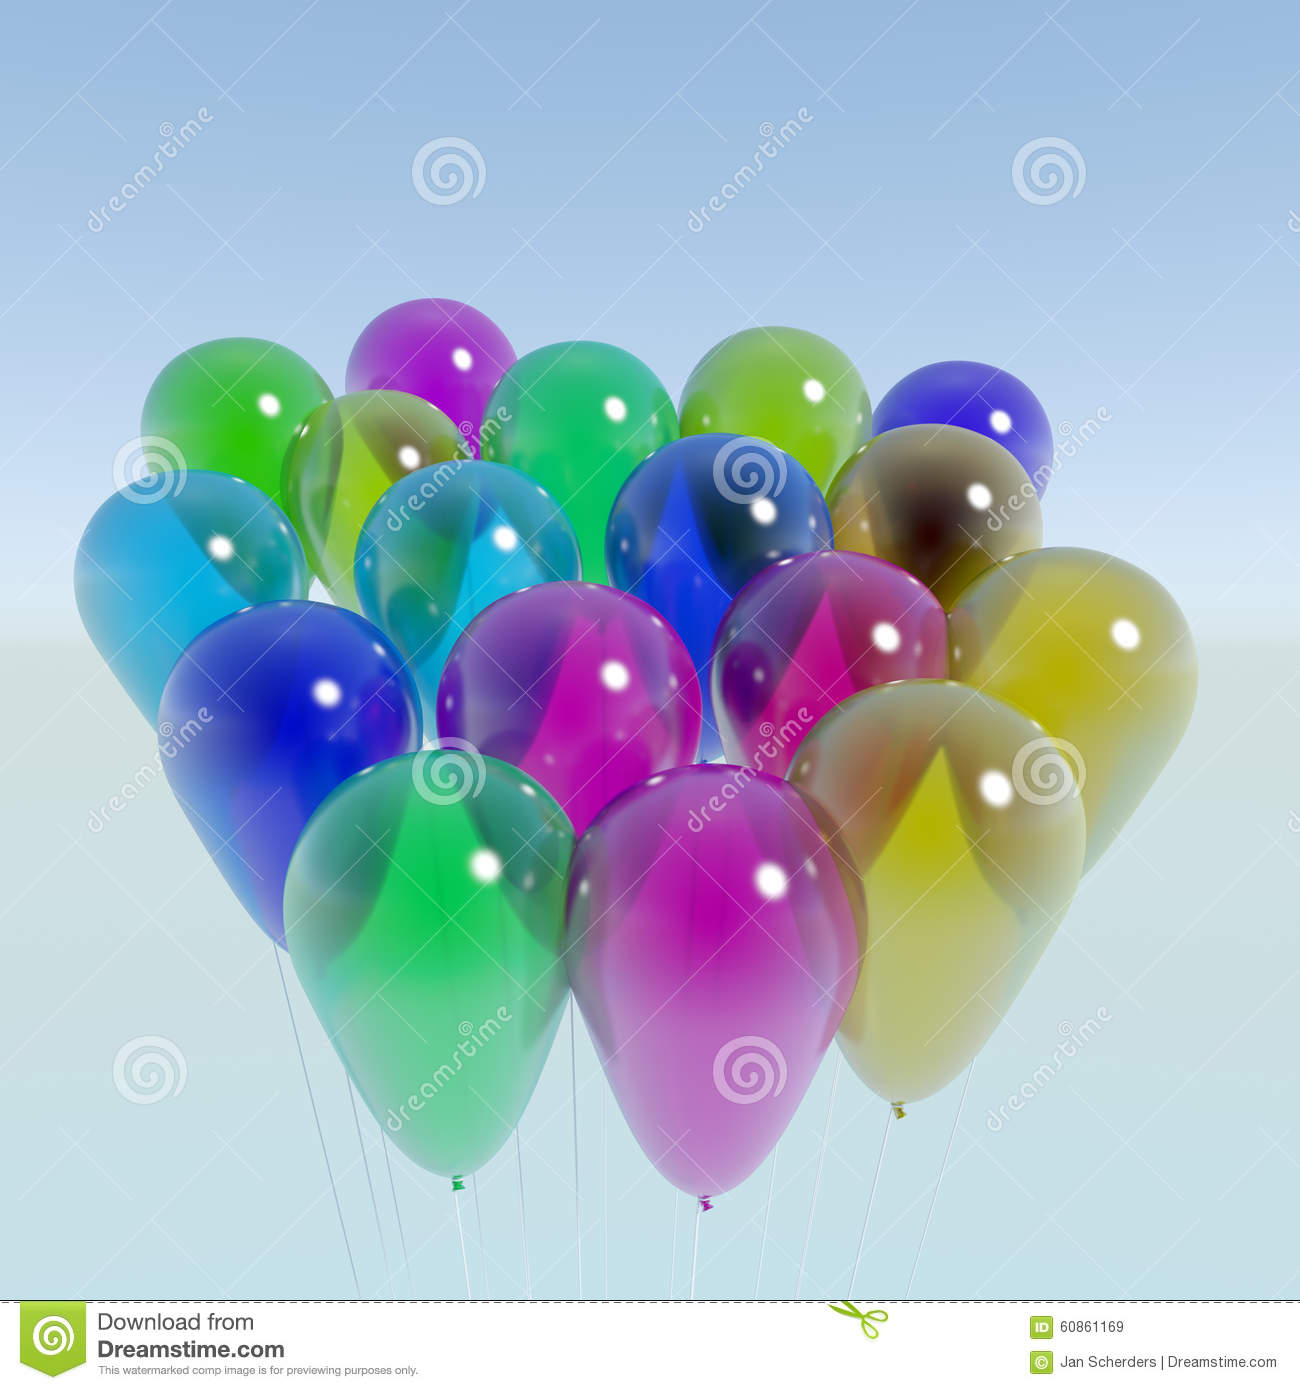 Bunch of Transparent Balloons